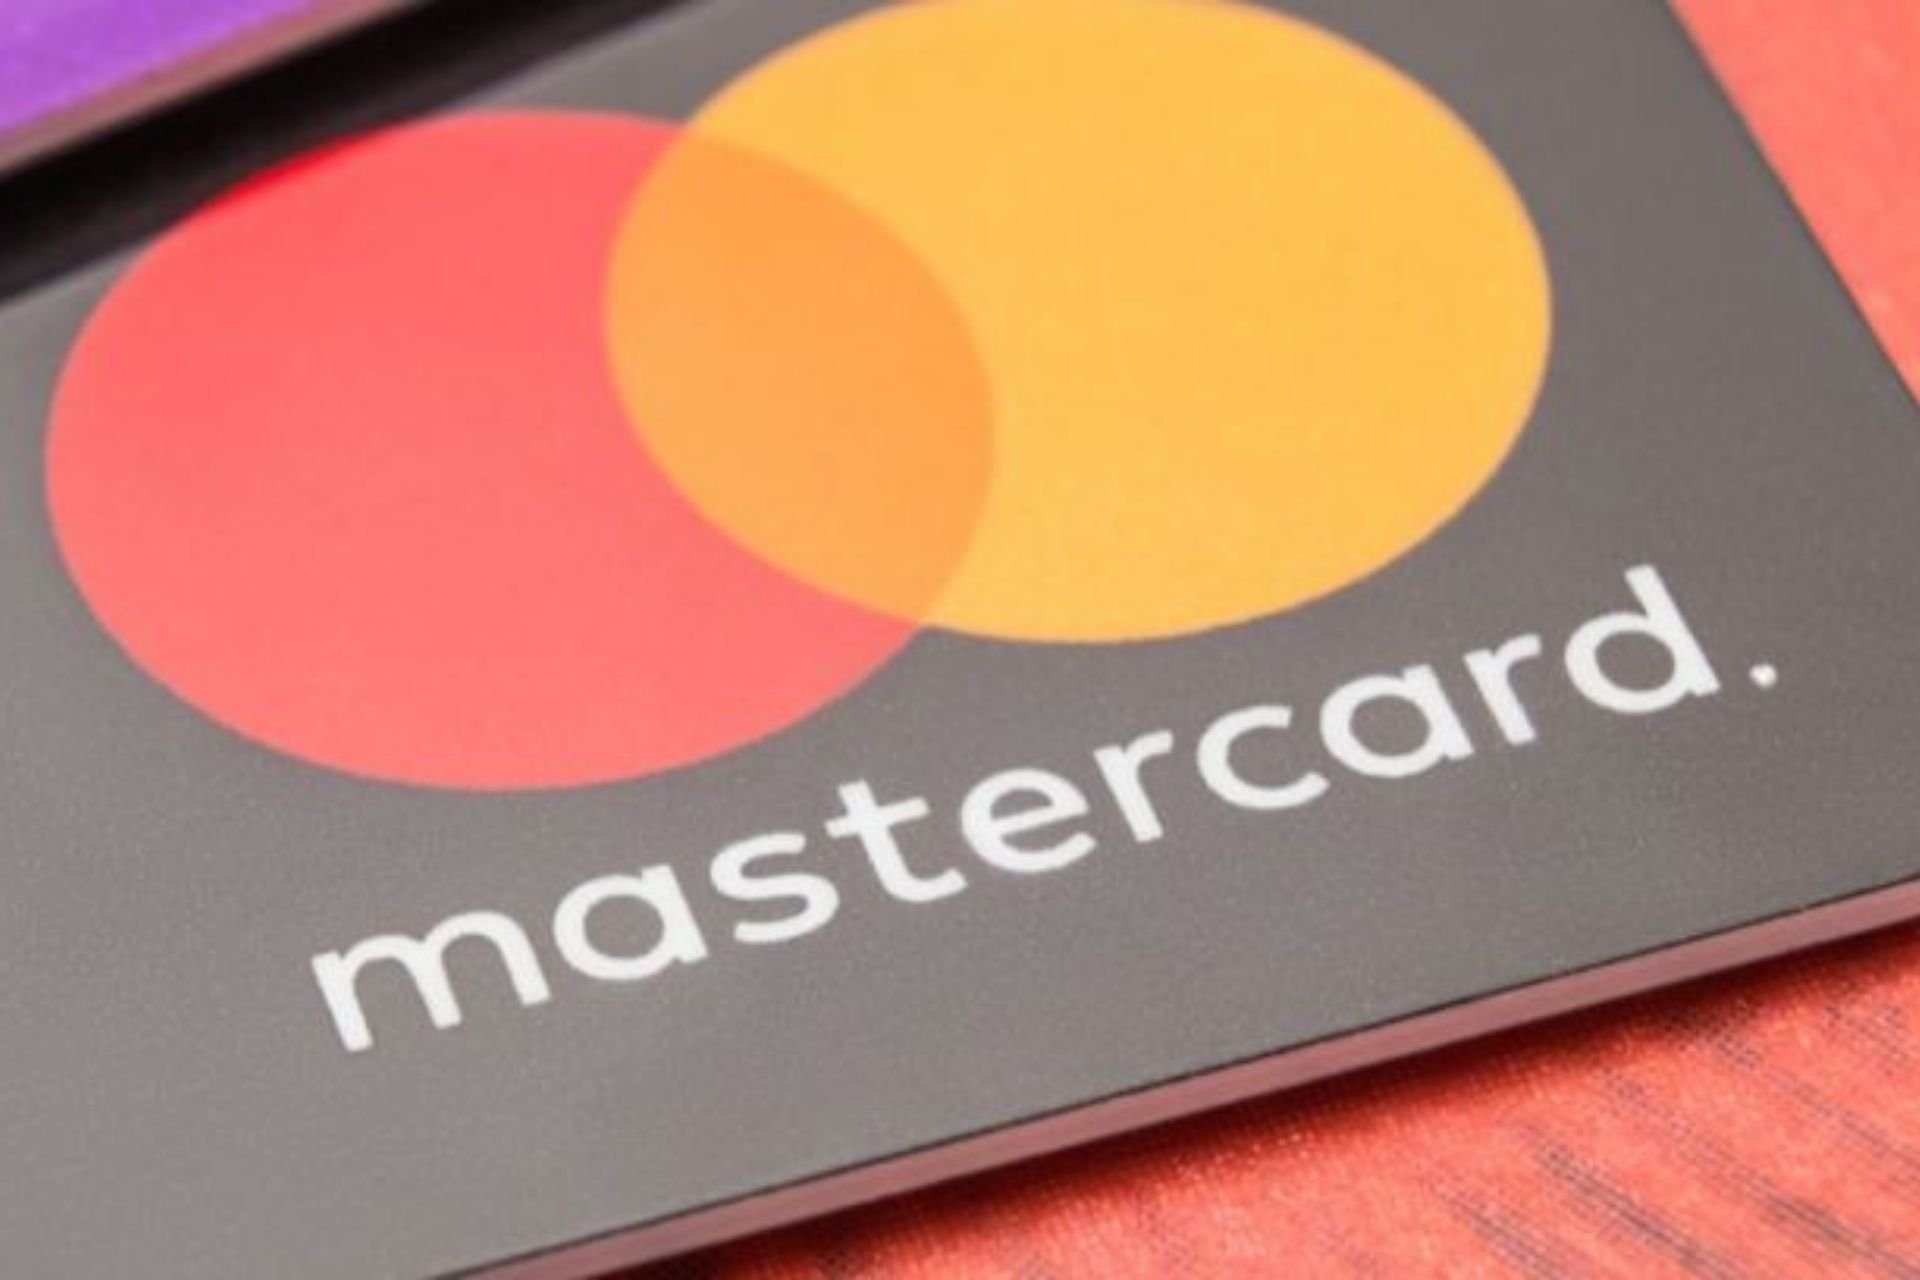 Bankers will face huge disruption due to the ban on MasterCard from RBI